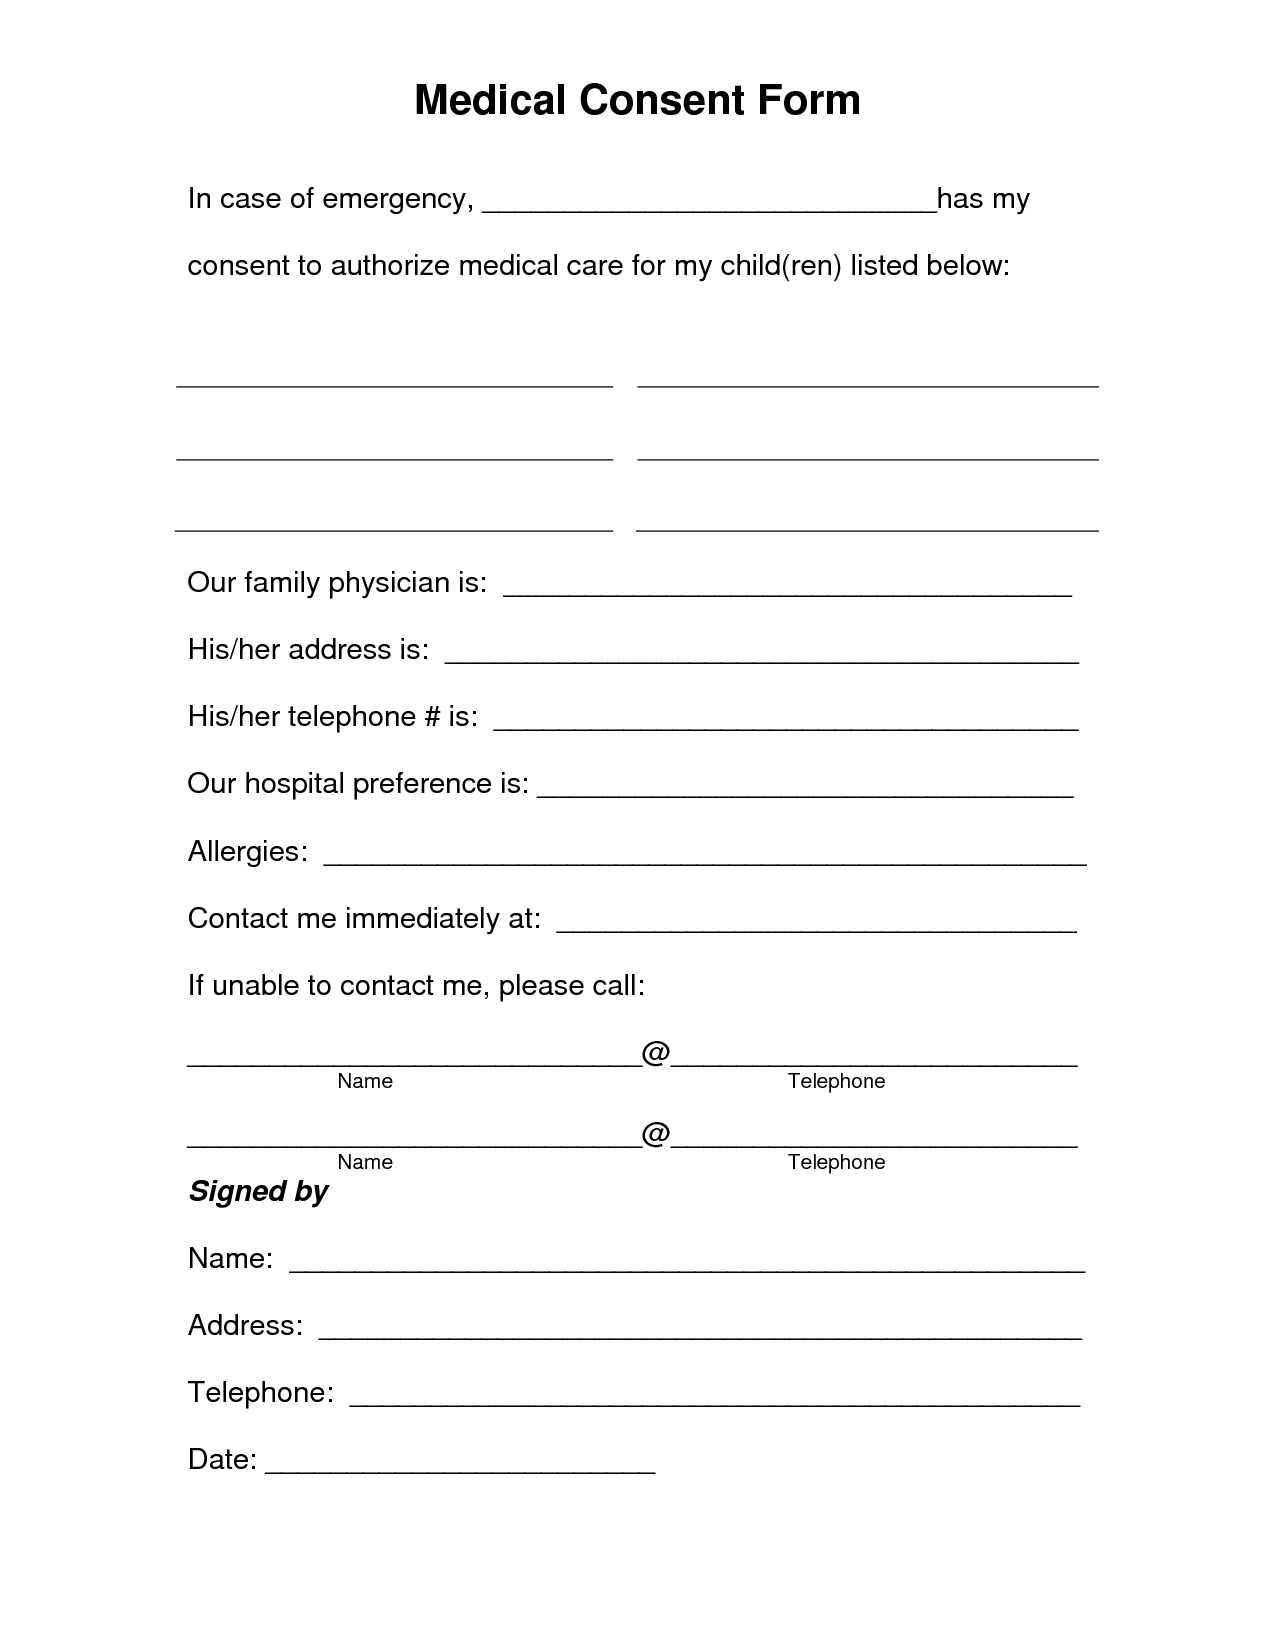 Free printable medical consent form free medical consent form free printable medical consent form free medical consent form spiritdancerdesigns Choice Image